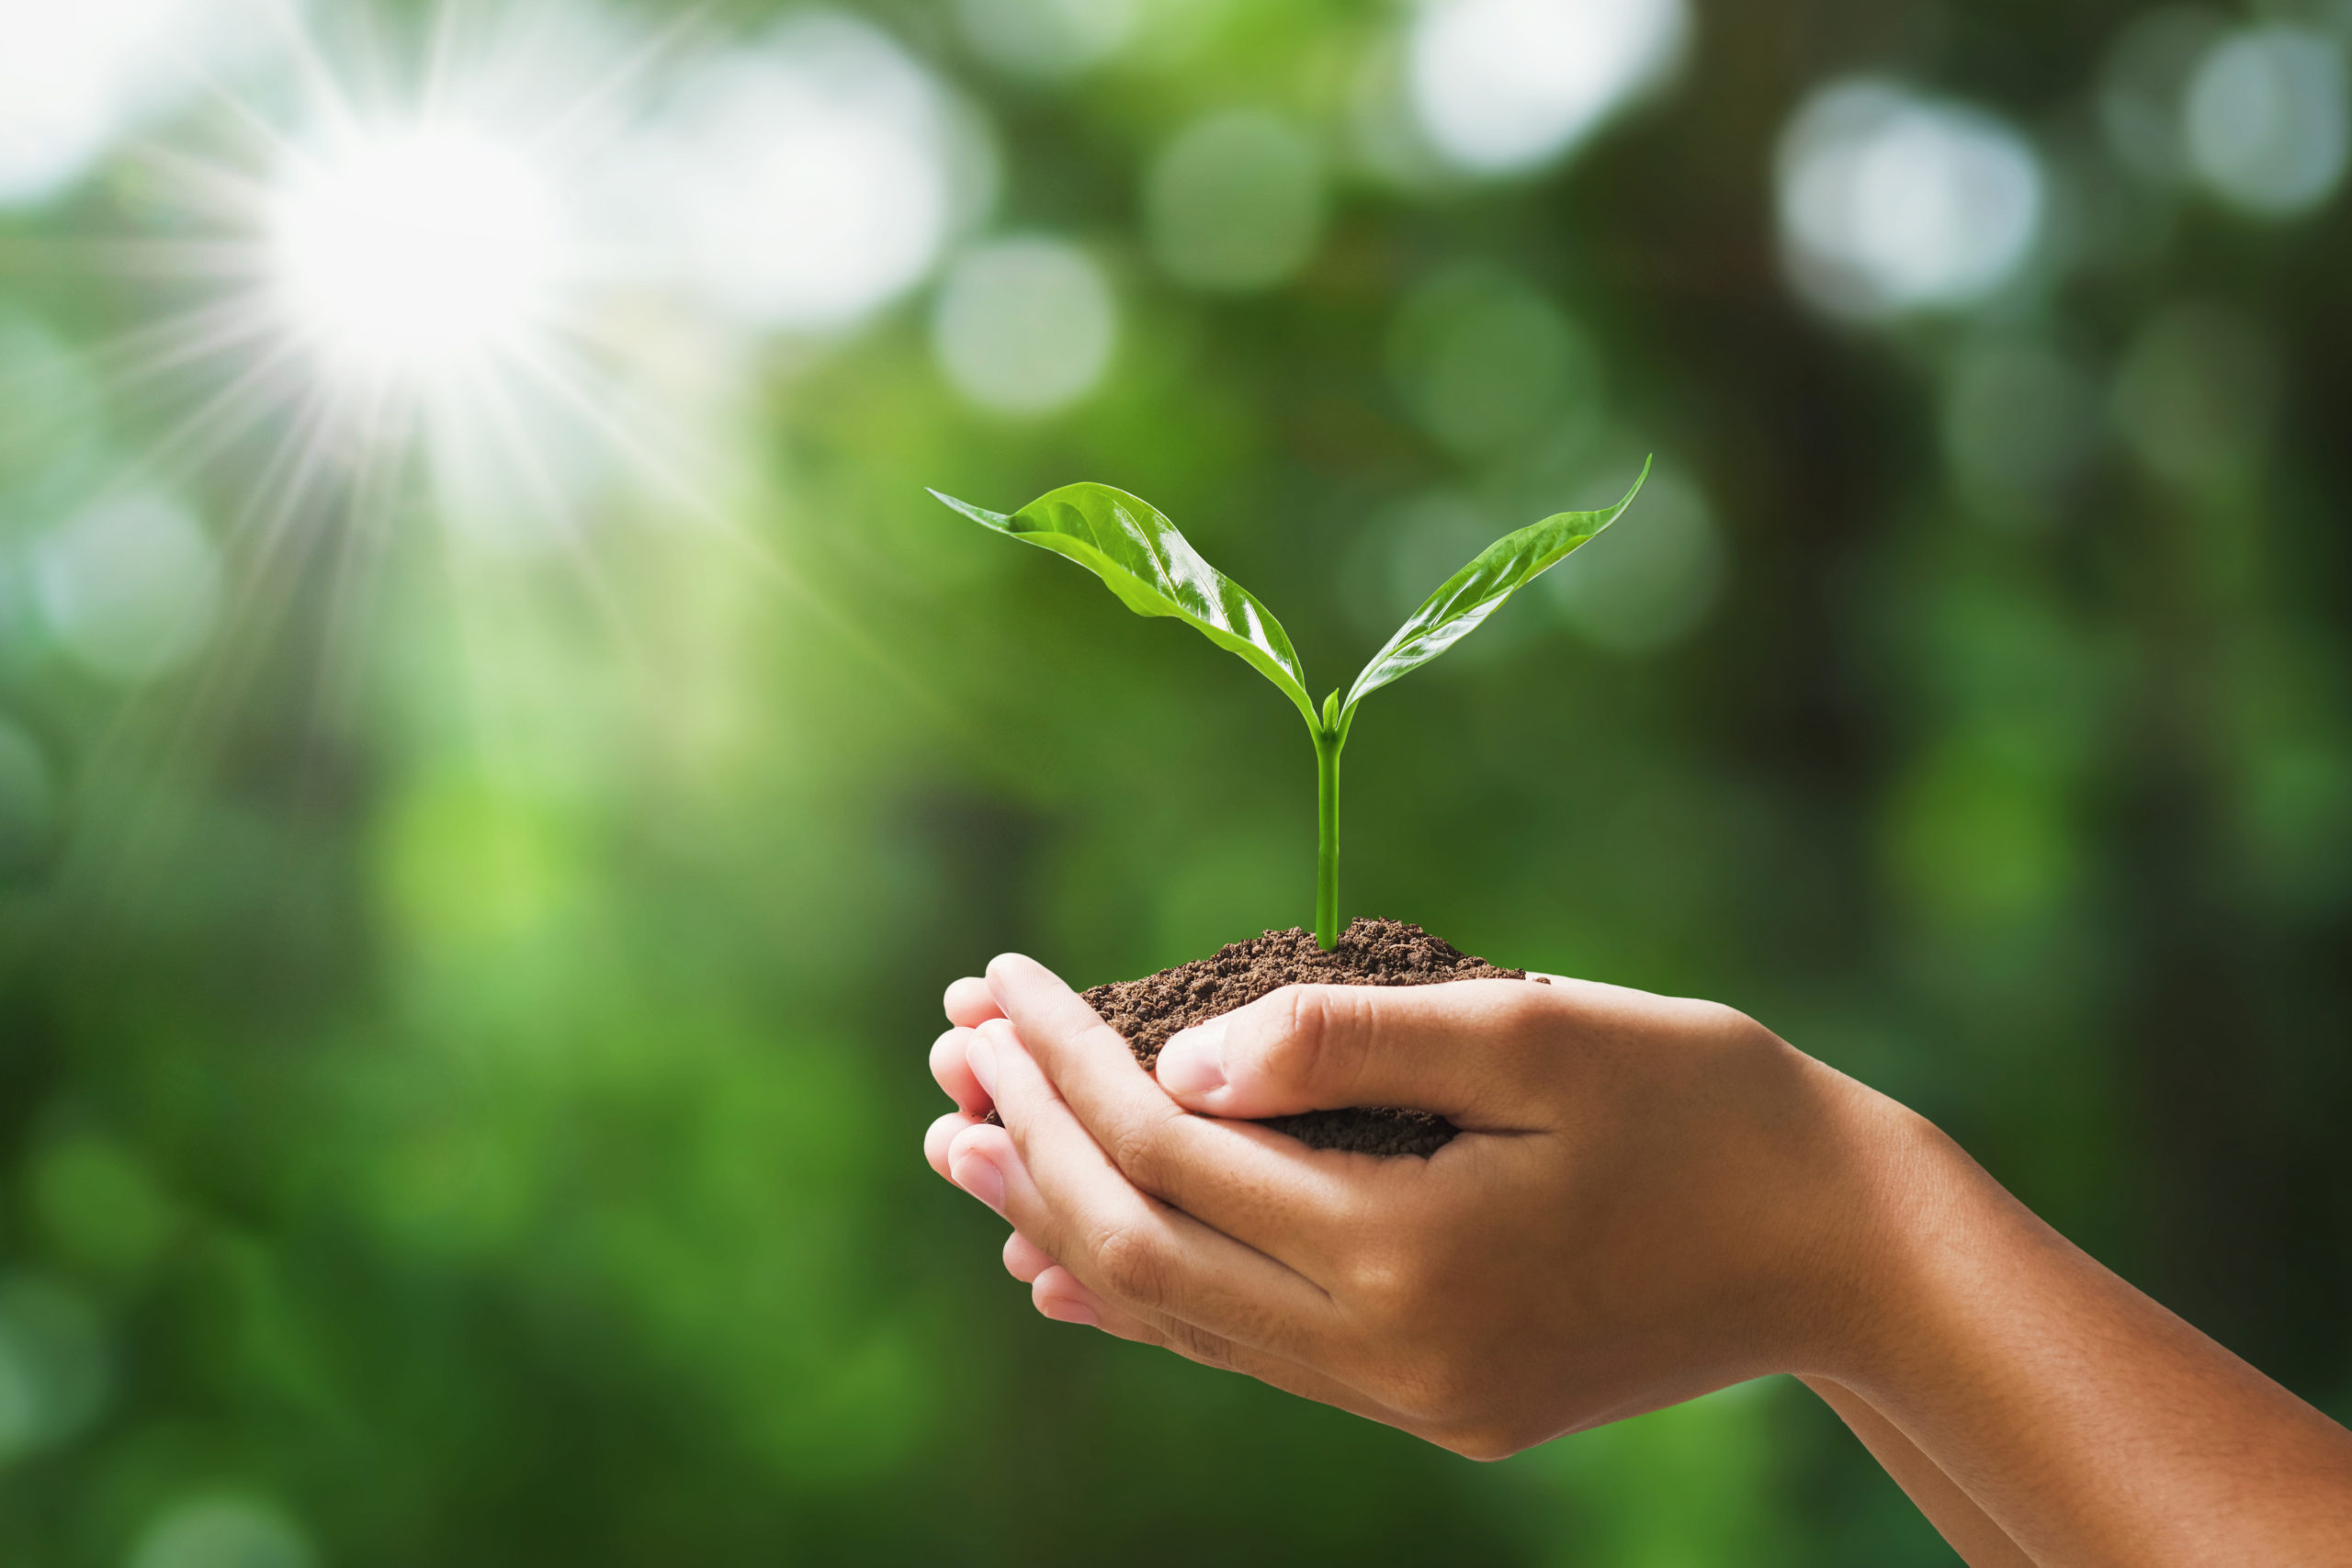 hand holding young plant on blur green nature background. concep